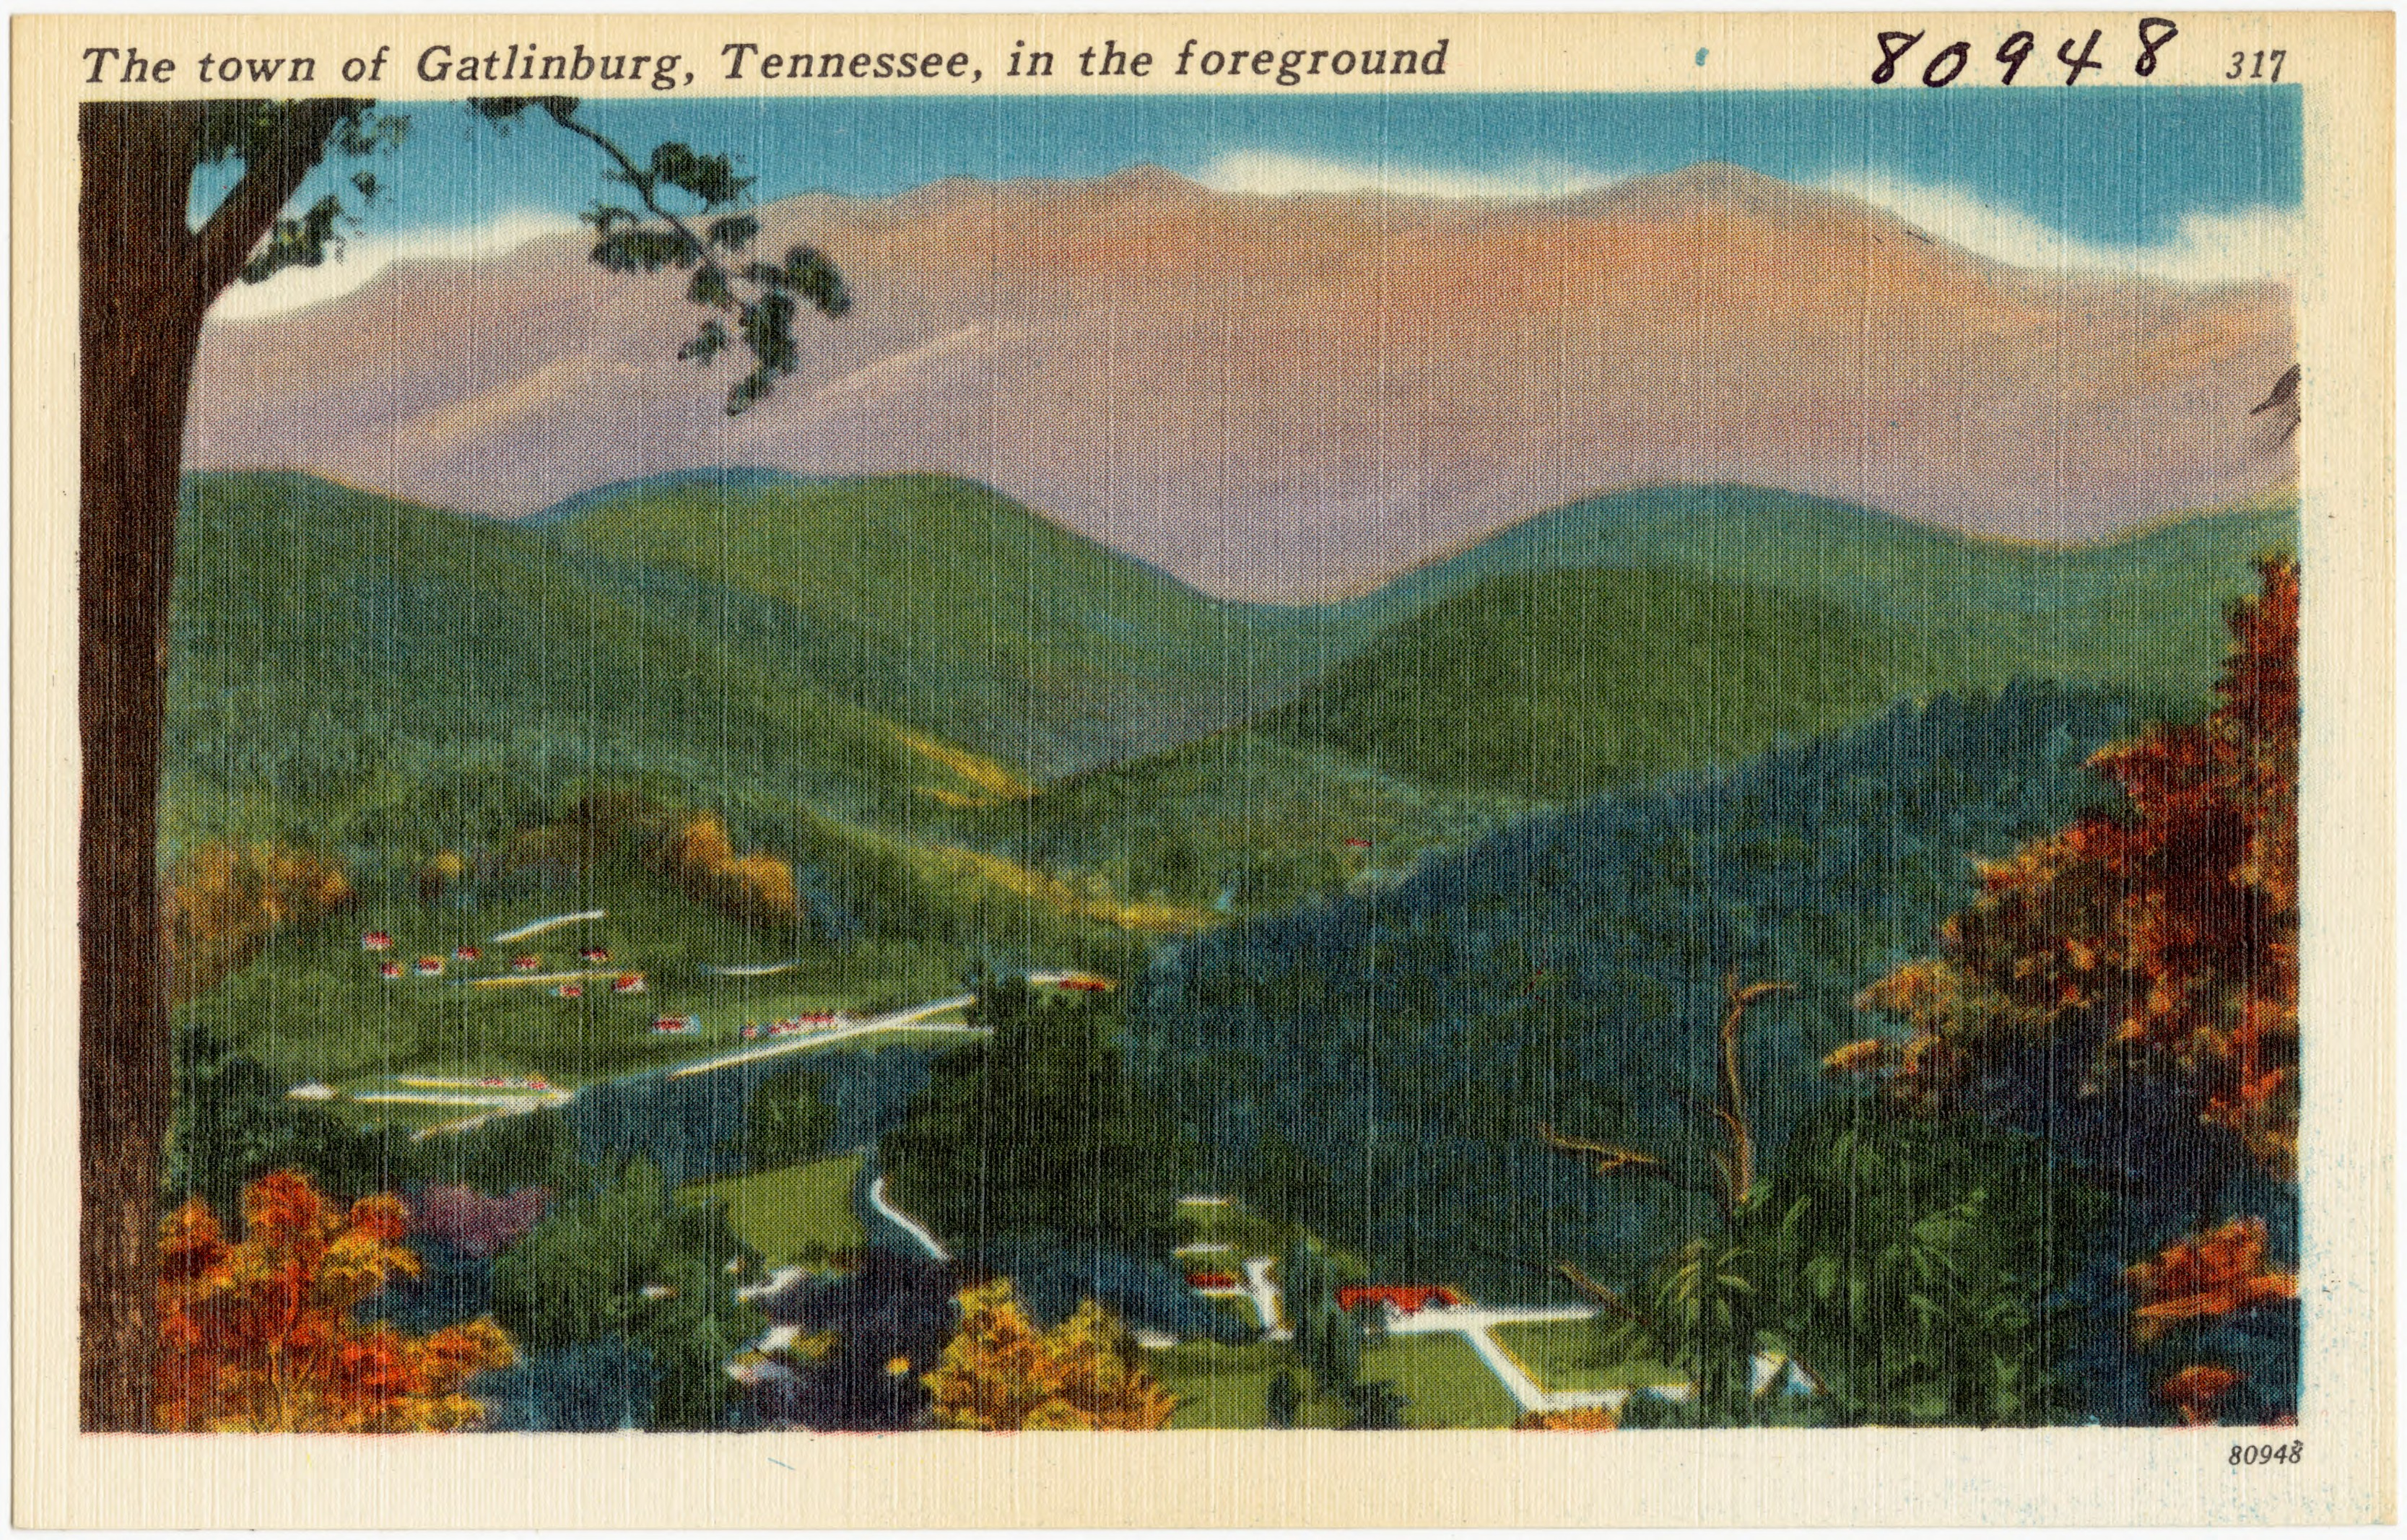 Oval Tablecloth Size Chart: The town of Gatlinburg Tennessee in the foreground (80948 ,Chart